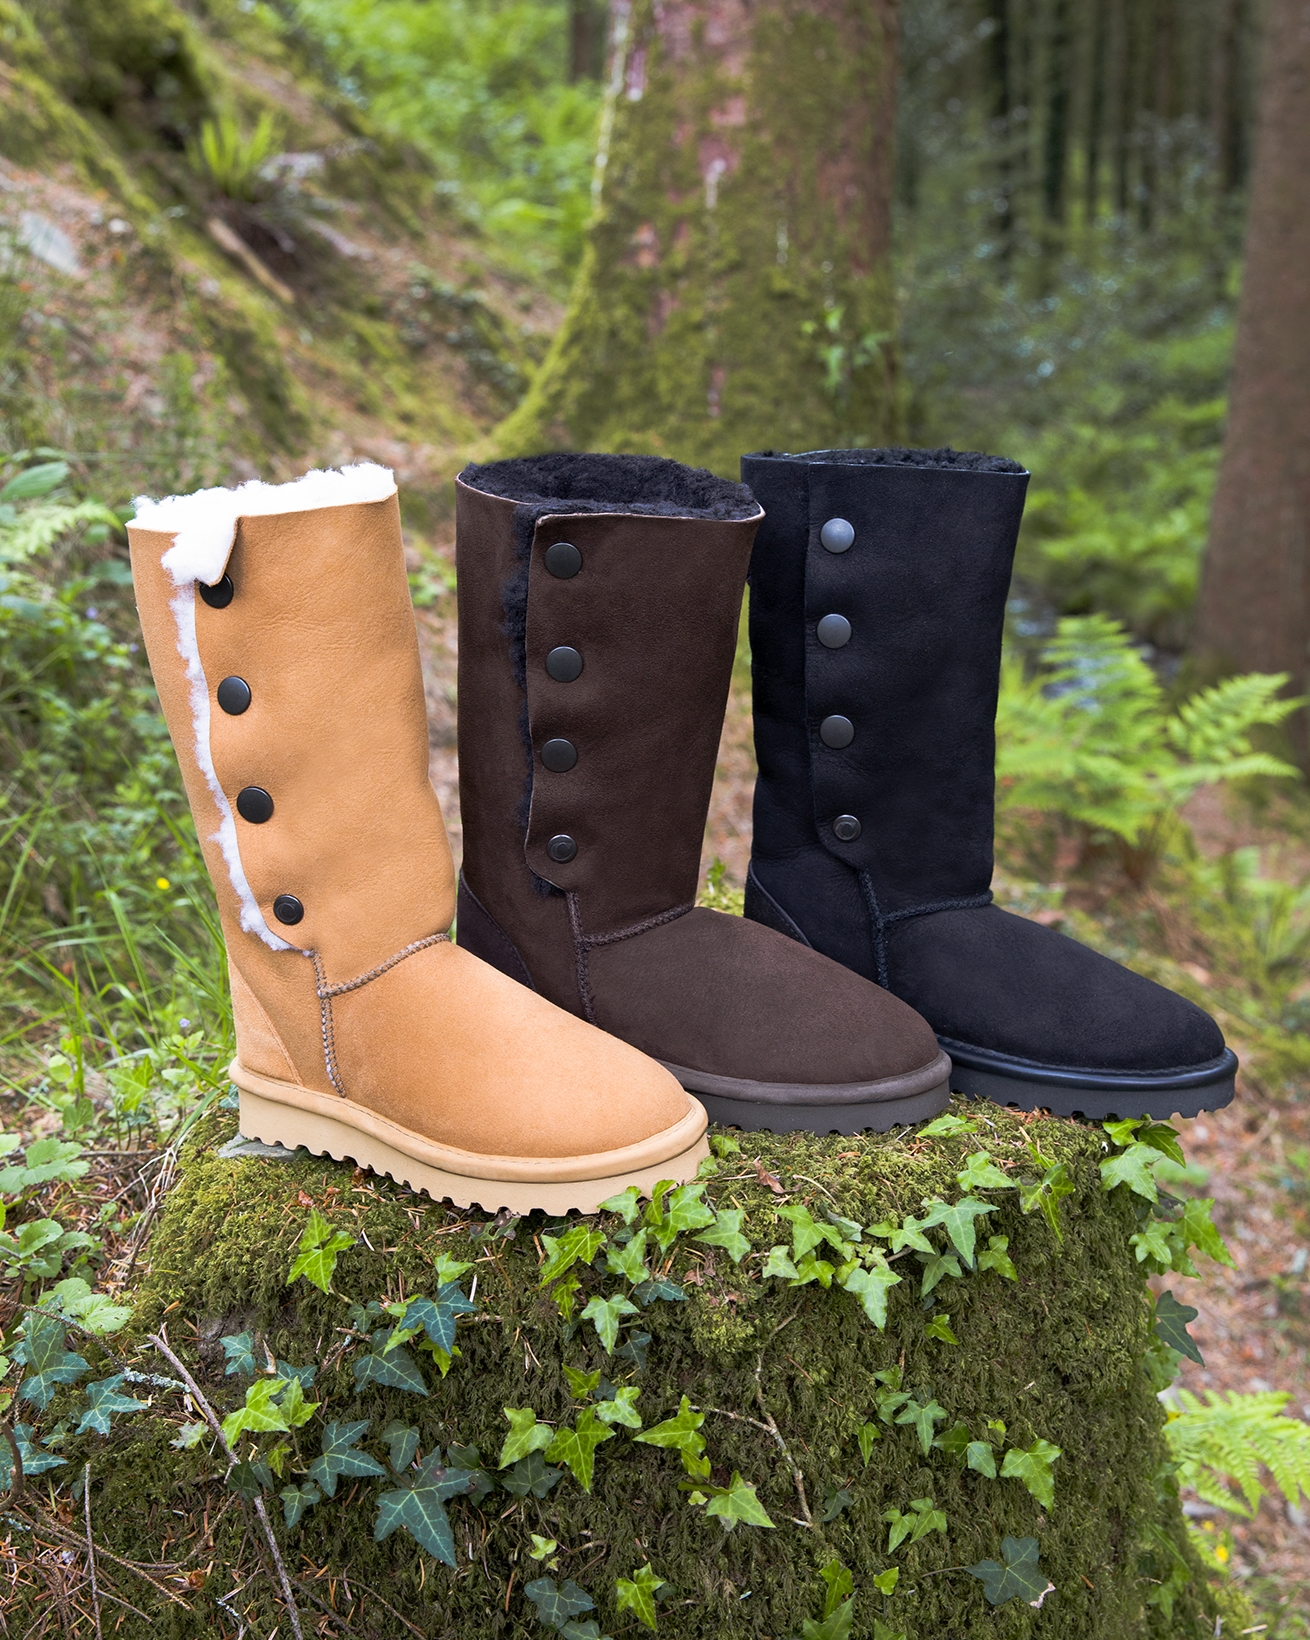 Popper Boots - Calf Height